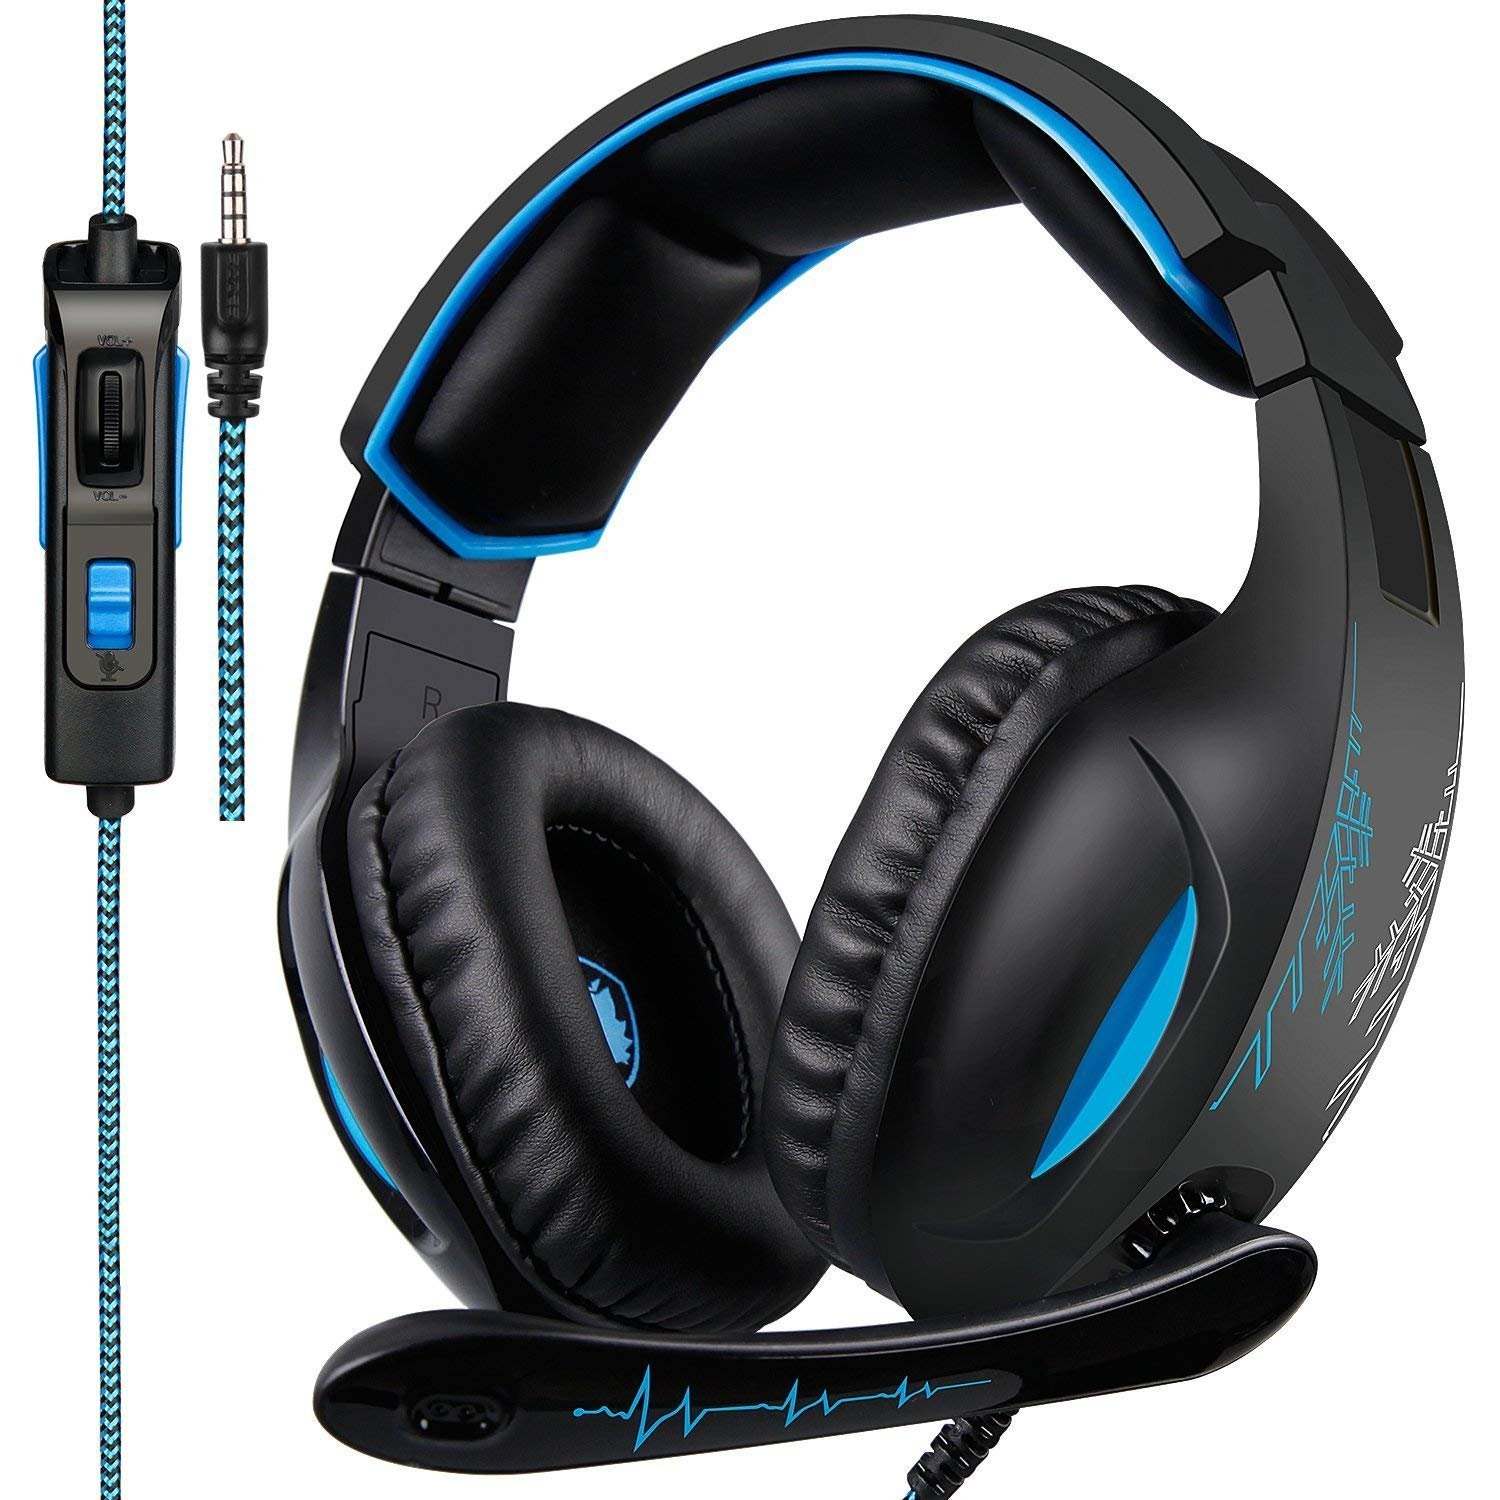 Gaming Headset for PS4, Xbox One,PC, Controller, Over Ear Bass Surround Headphones with Noise Cancelling Mic, Soft Memory Earmuffs for PlayStation 4 Computer Mac Laptop Nintendo Switch Games